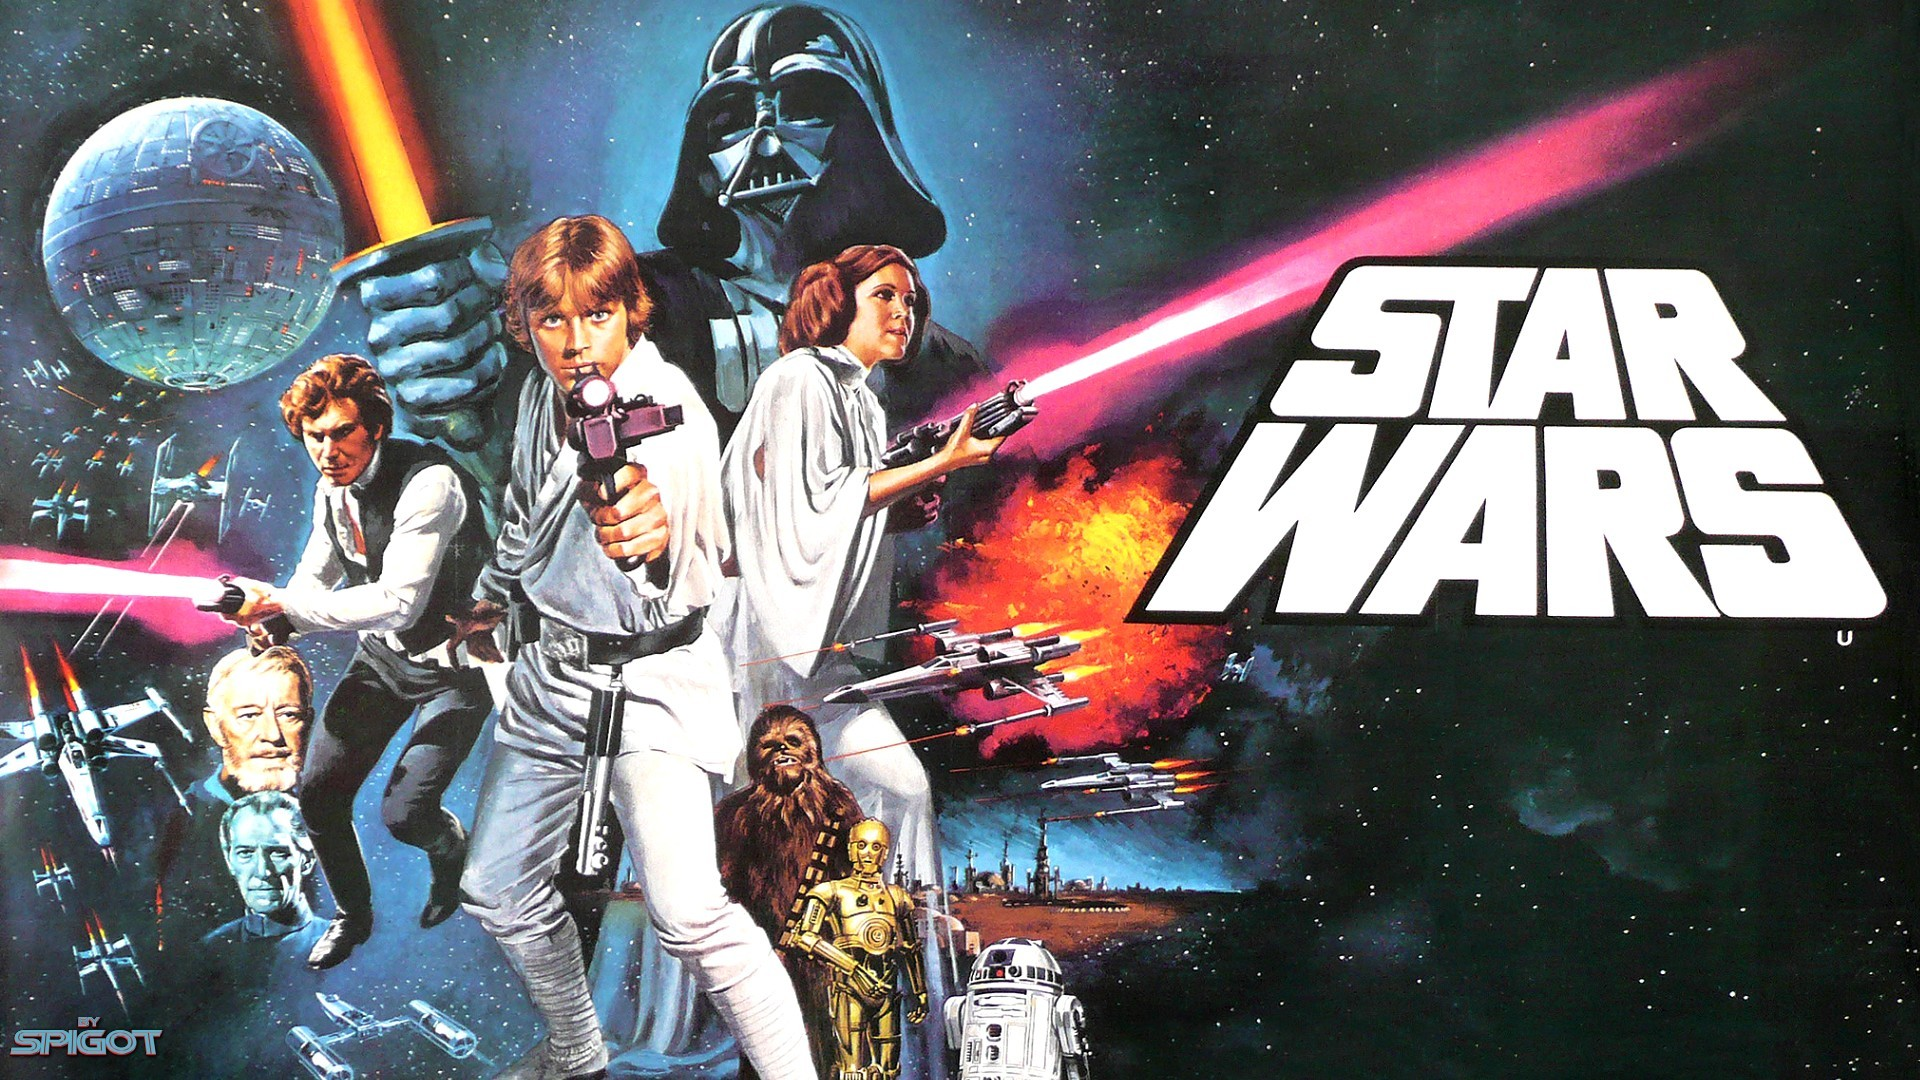 Star Wars movie poster a fantastic poster for a fantastic film 1920x1080